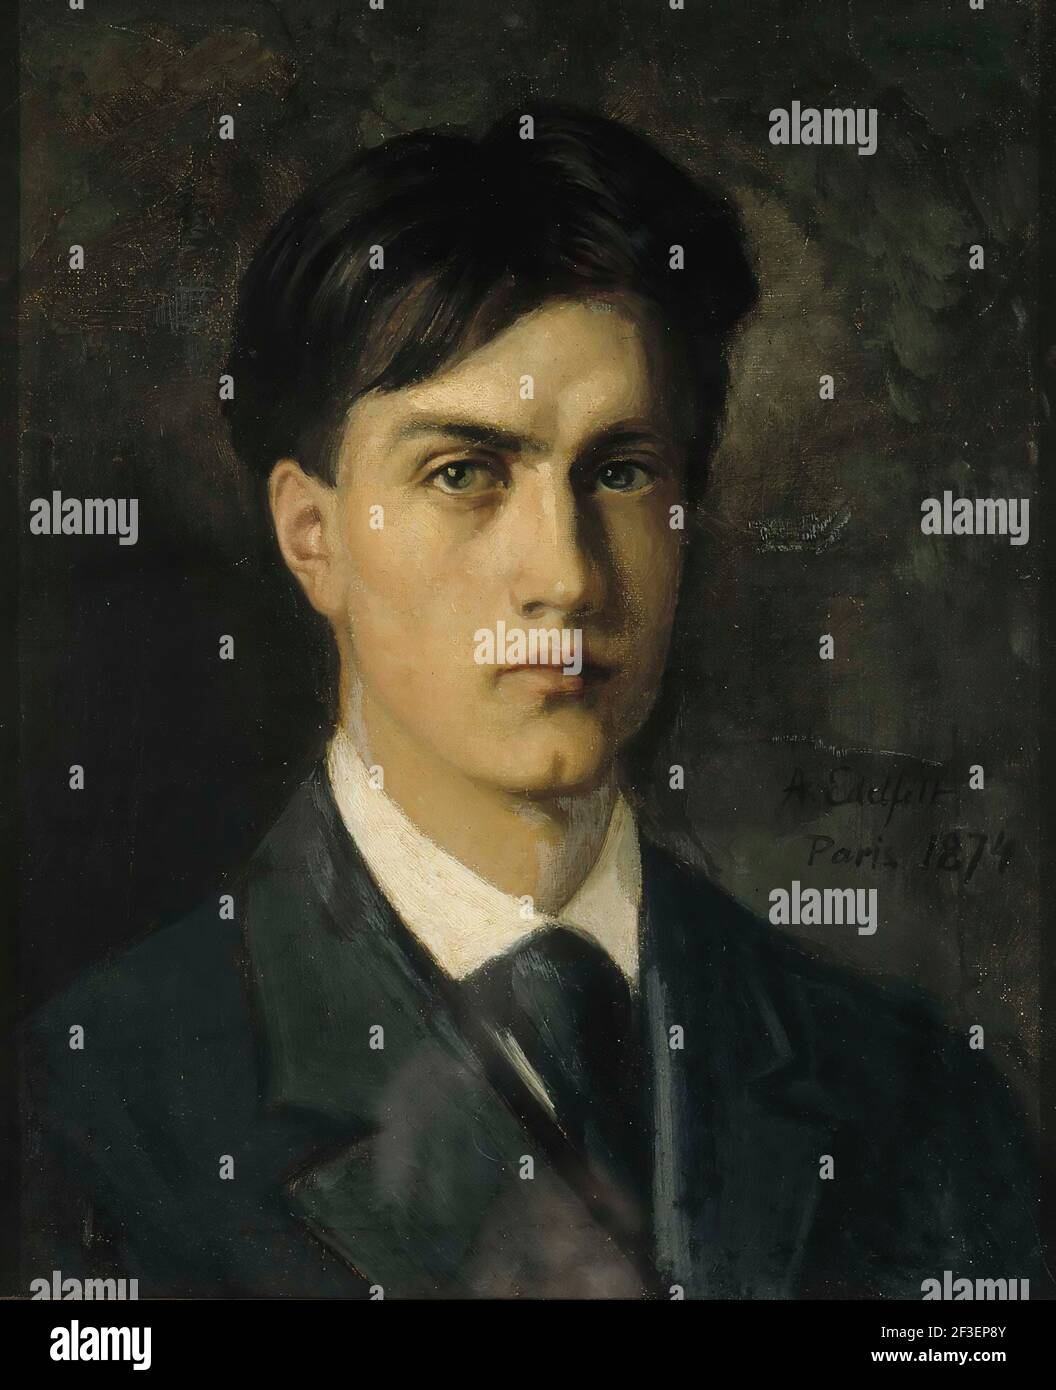 Self-Portrait, 1874. Found in the collection of Ateneum, Helsinki. Stock Photo